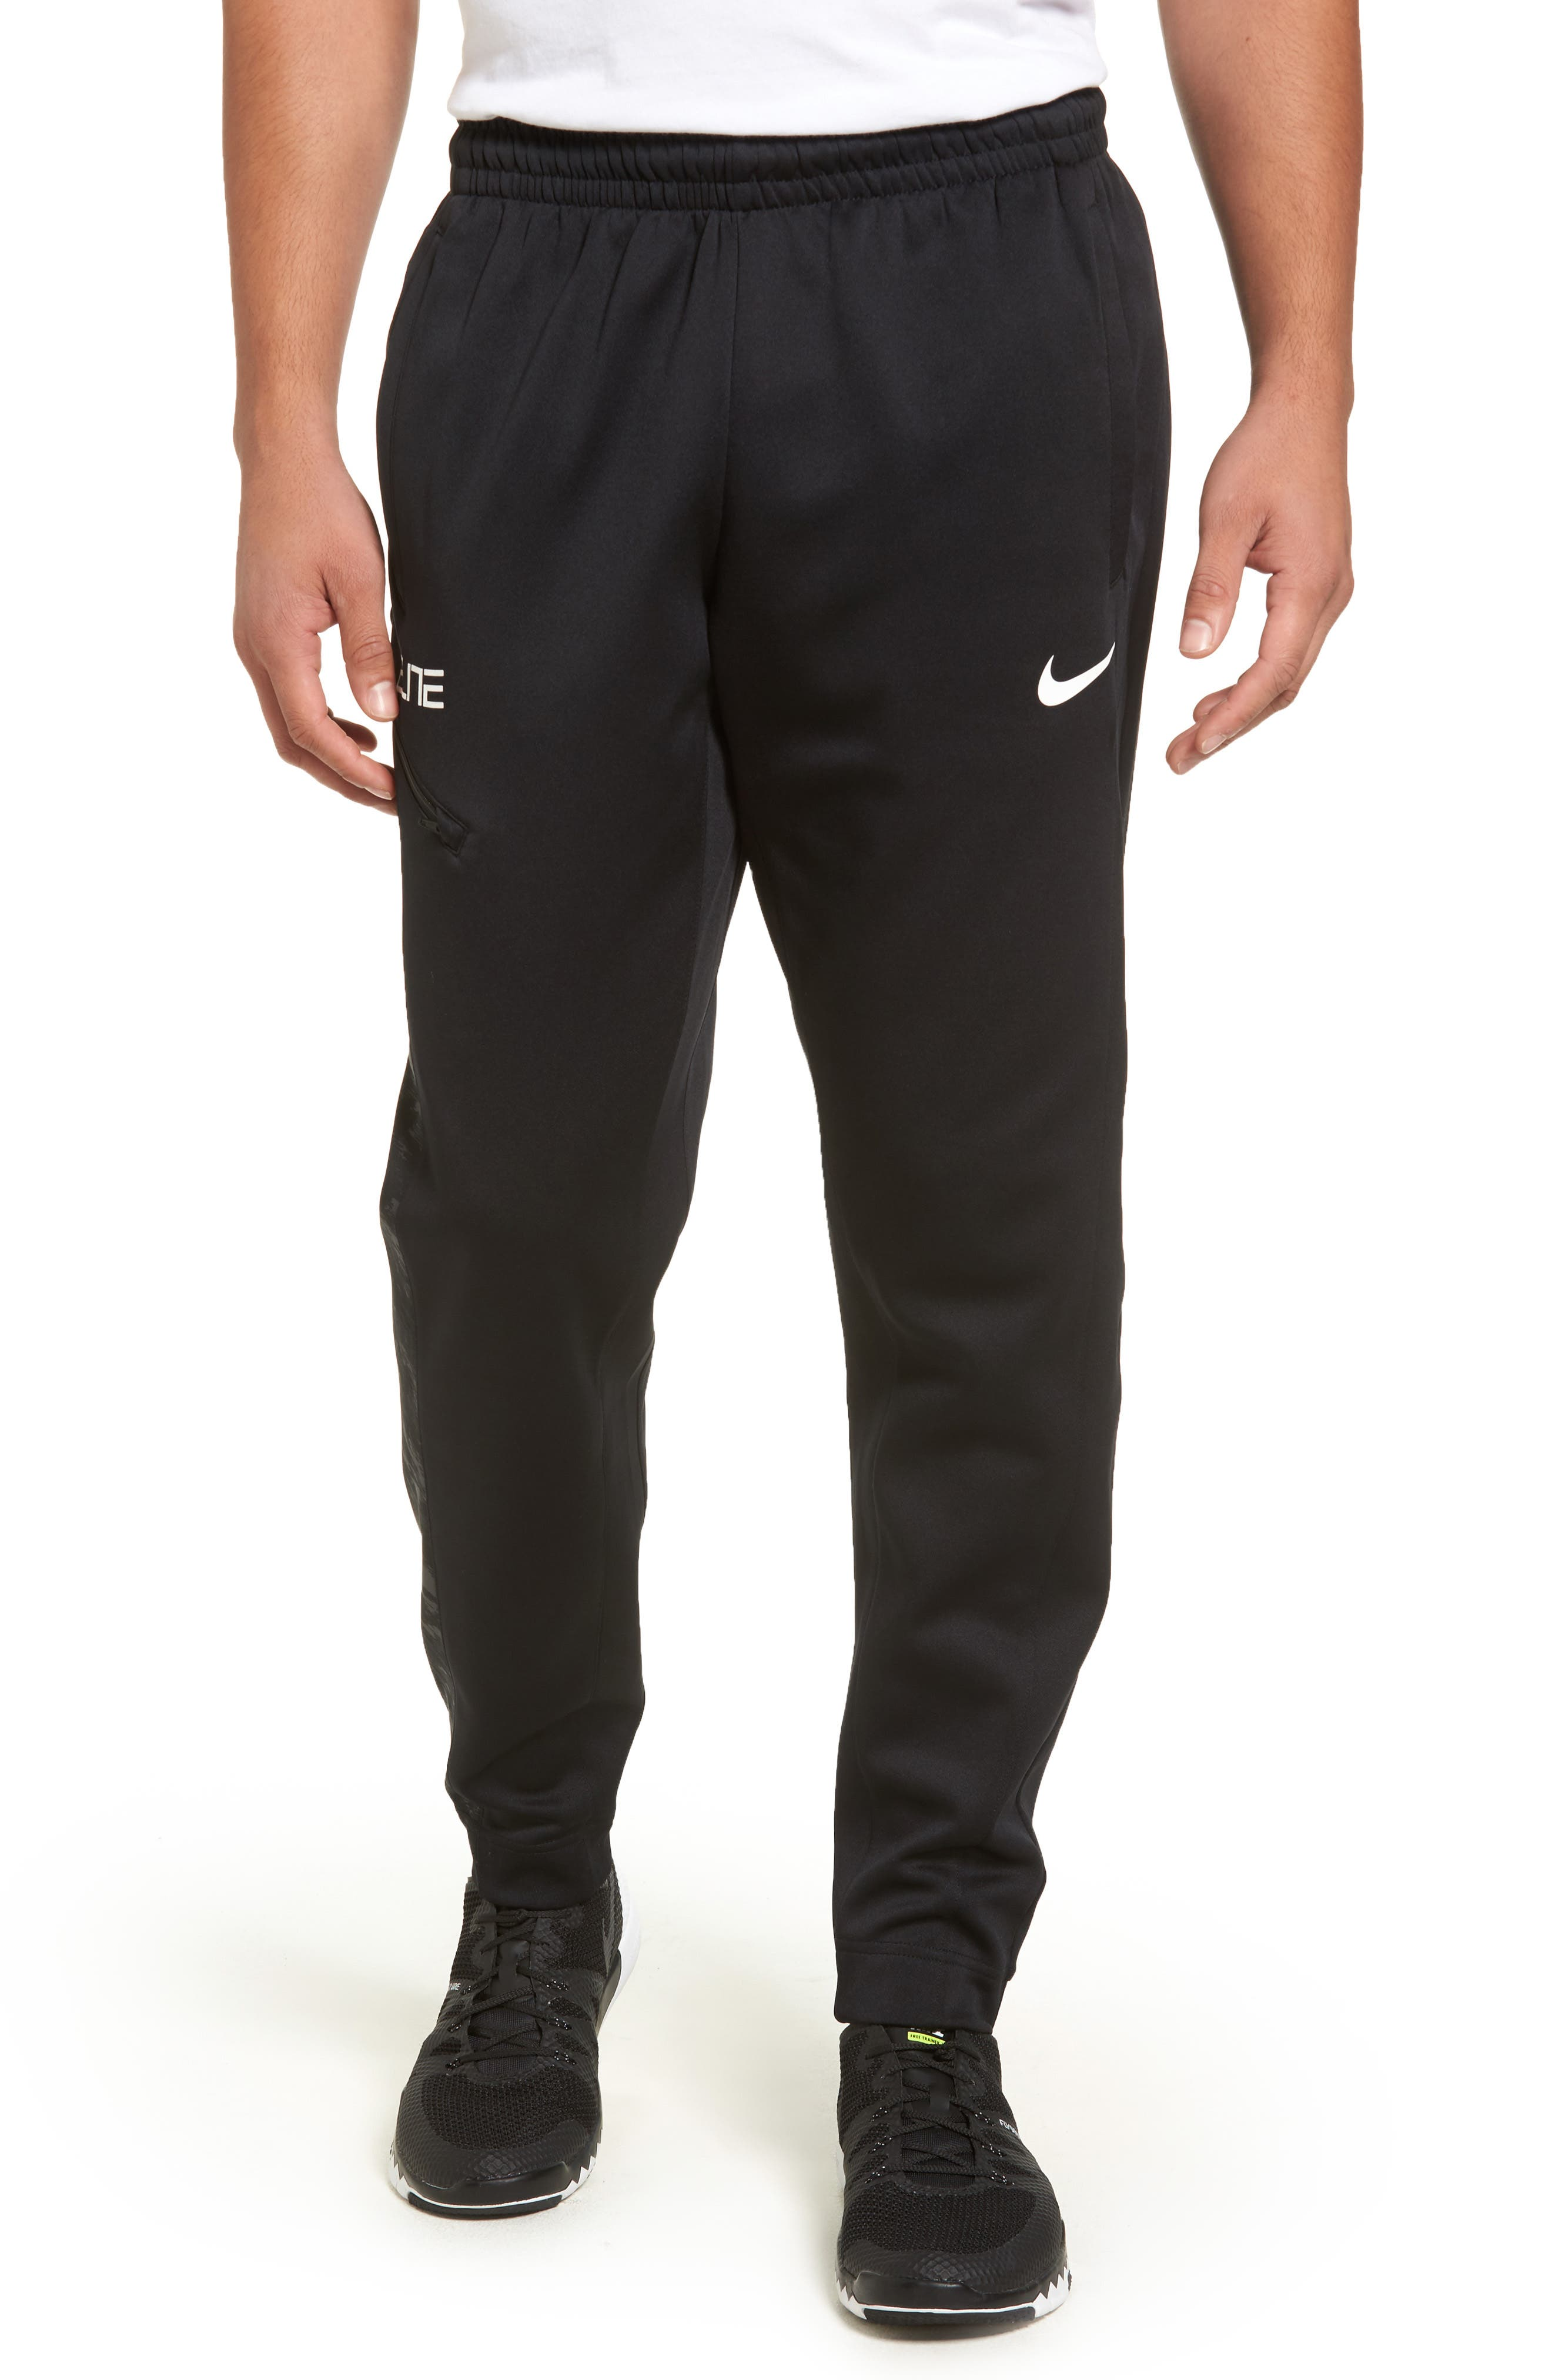 Therma Elite Basketball Pants,                         Main,                         color, Black/ White